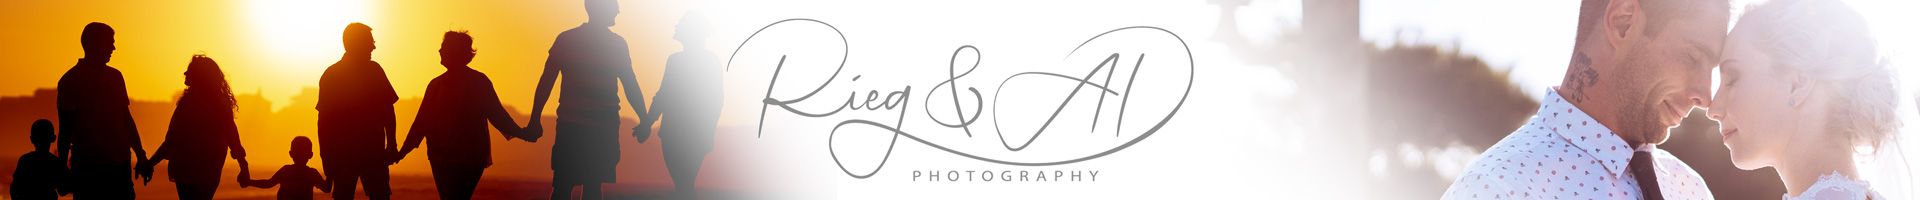 Rieg & AD Photography